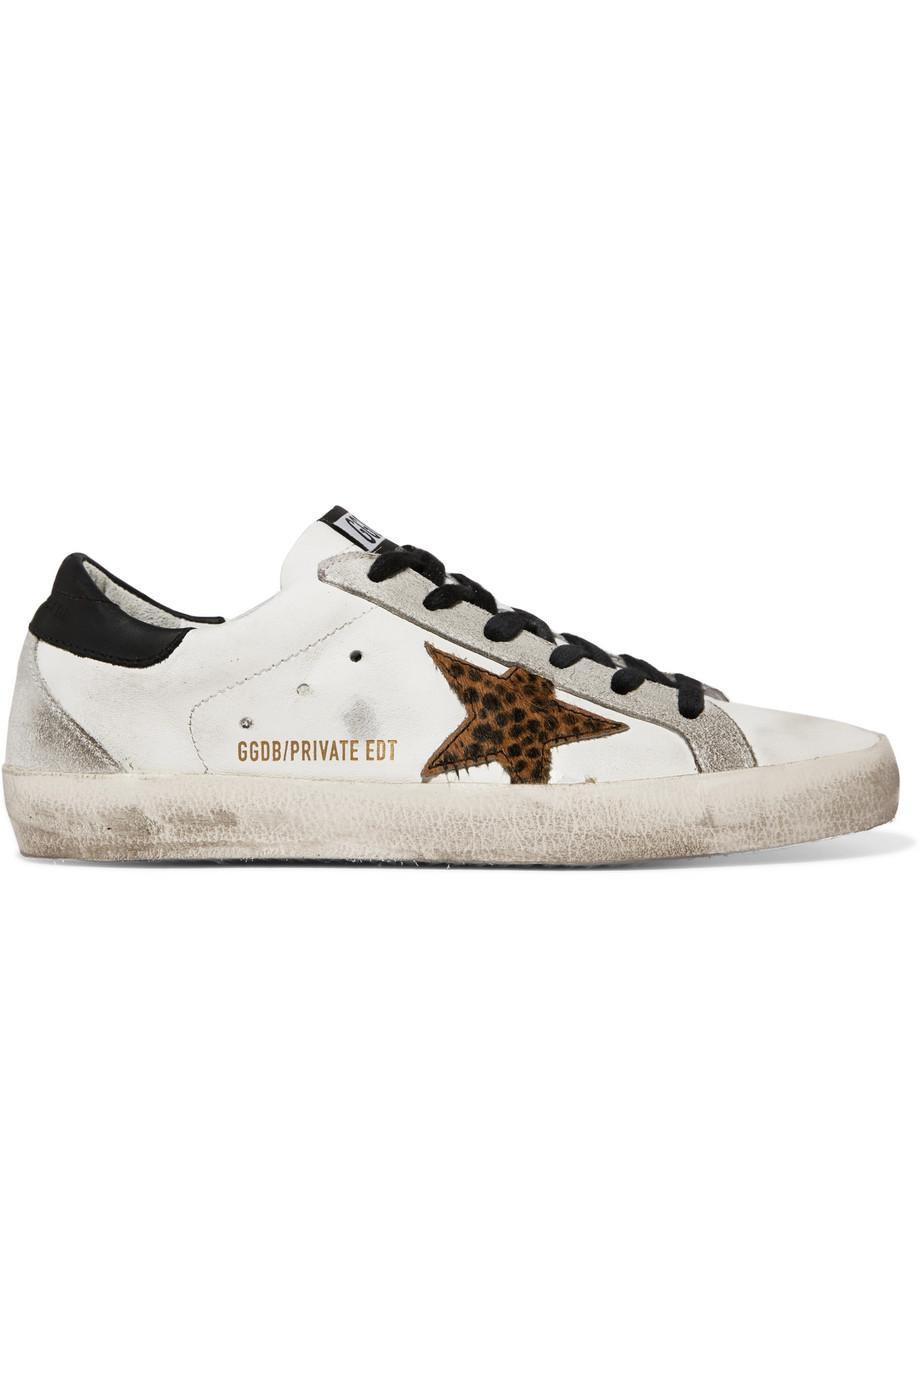 Superstar Distressed Leopard-print Calf Hair, Leather And Suede Sneakers - Leopard print Golden Goose